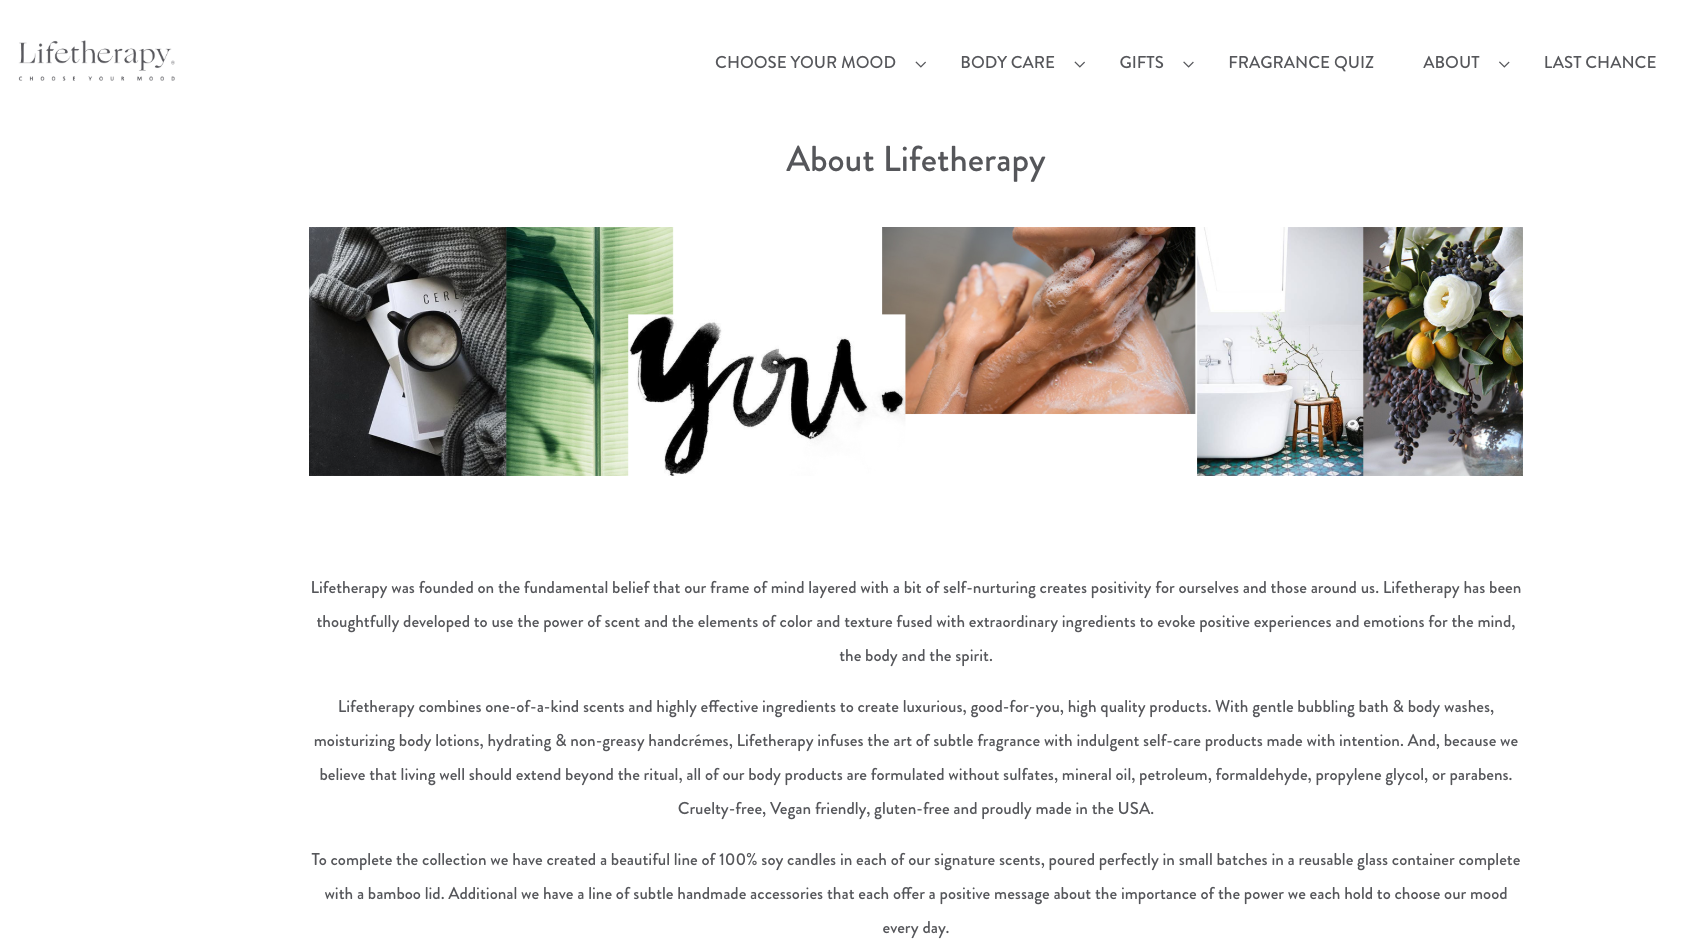 Website copy/Brand voice/Marketing collateral